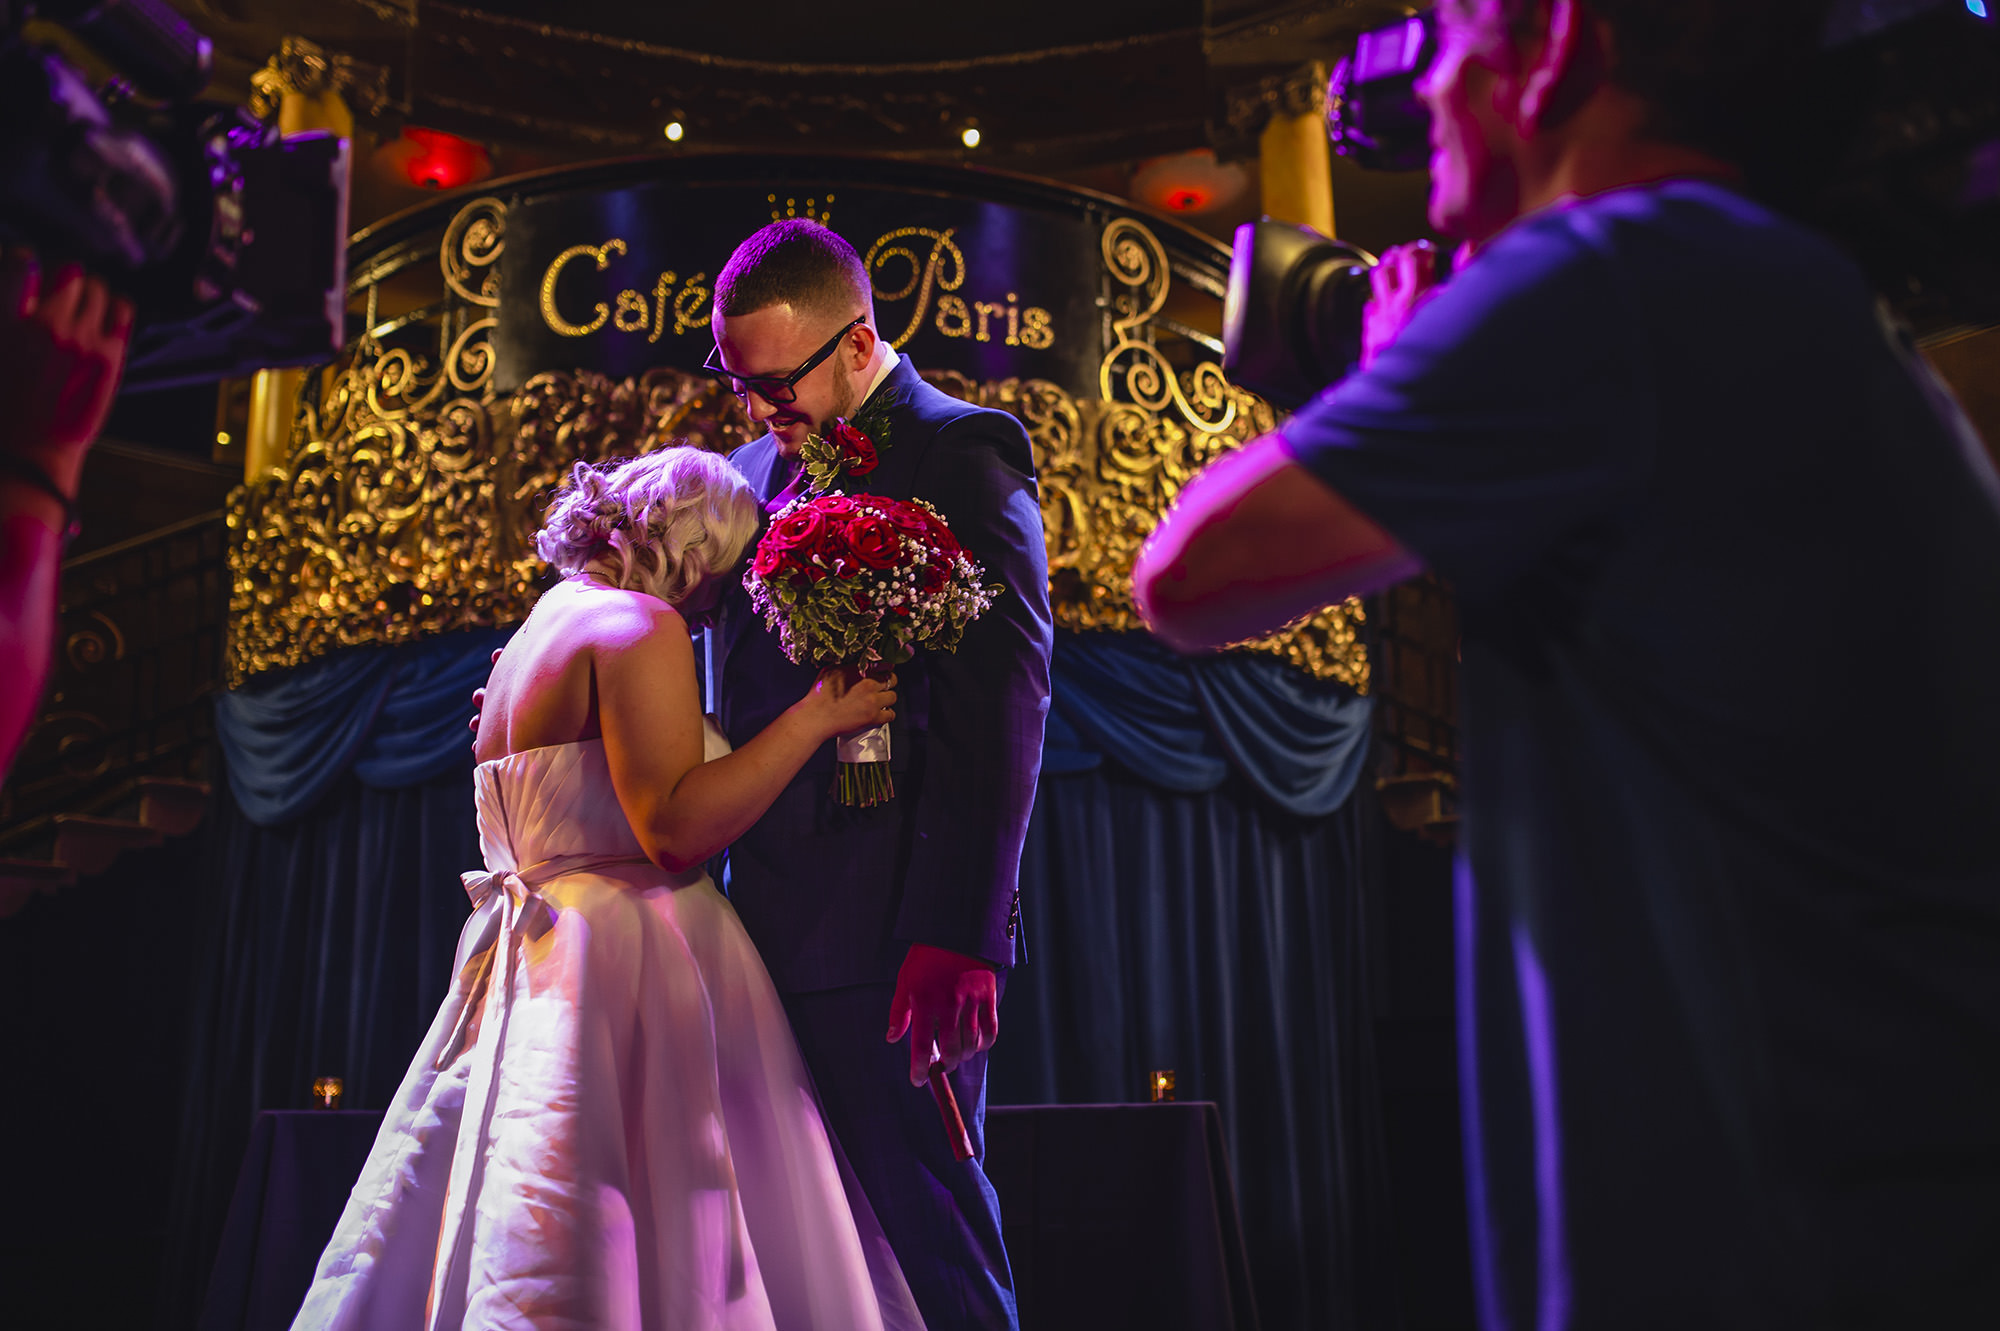 wedding ceremony in cafe de paris